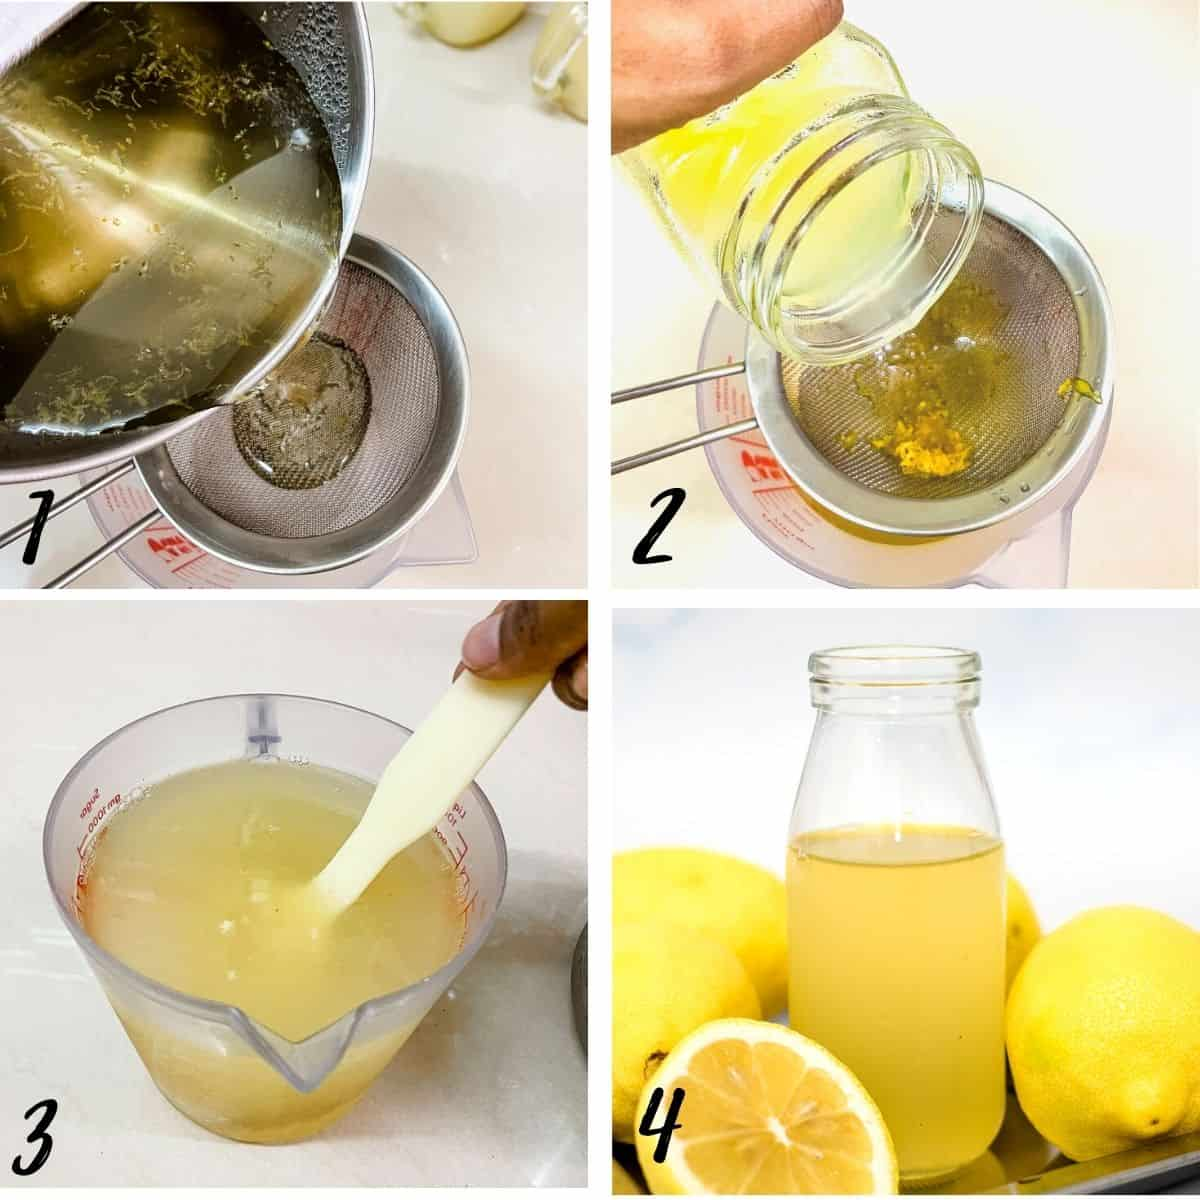 A poster of 4 images showing how to strain sugar syrup and lemon juice into a pot to make lemonade concentrate